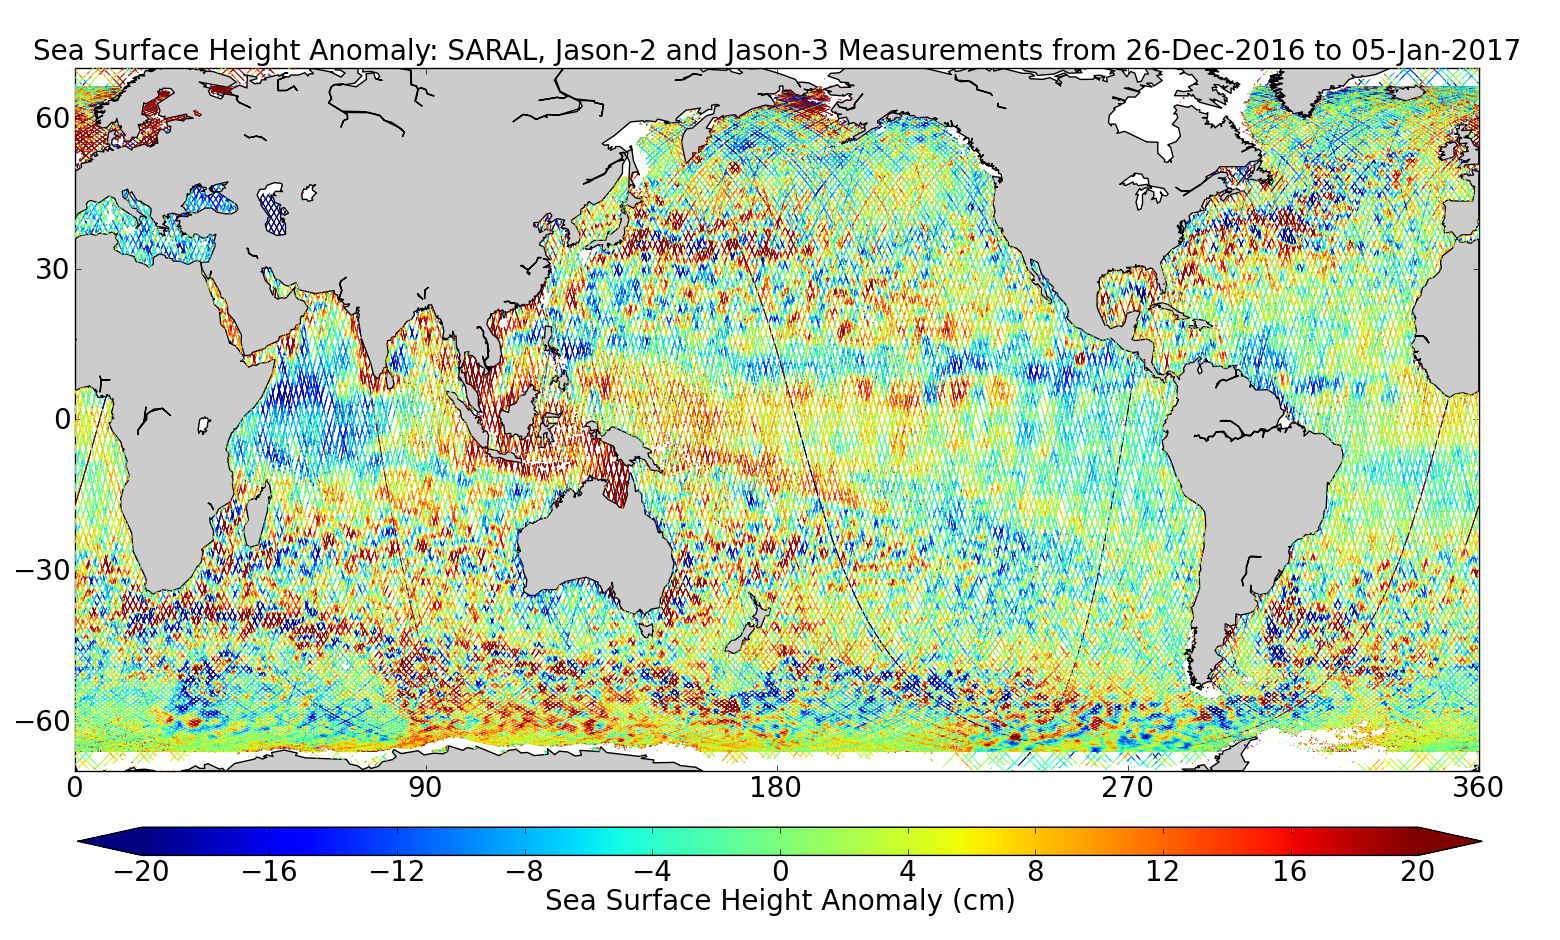 Sea Surface Height Anomaly: SARAL, Jason-2 and Jason-3 Measurements from 26-Dec-2016 to 05-Jan-2017